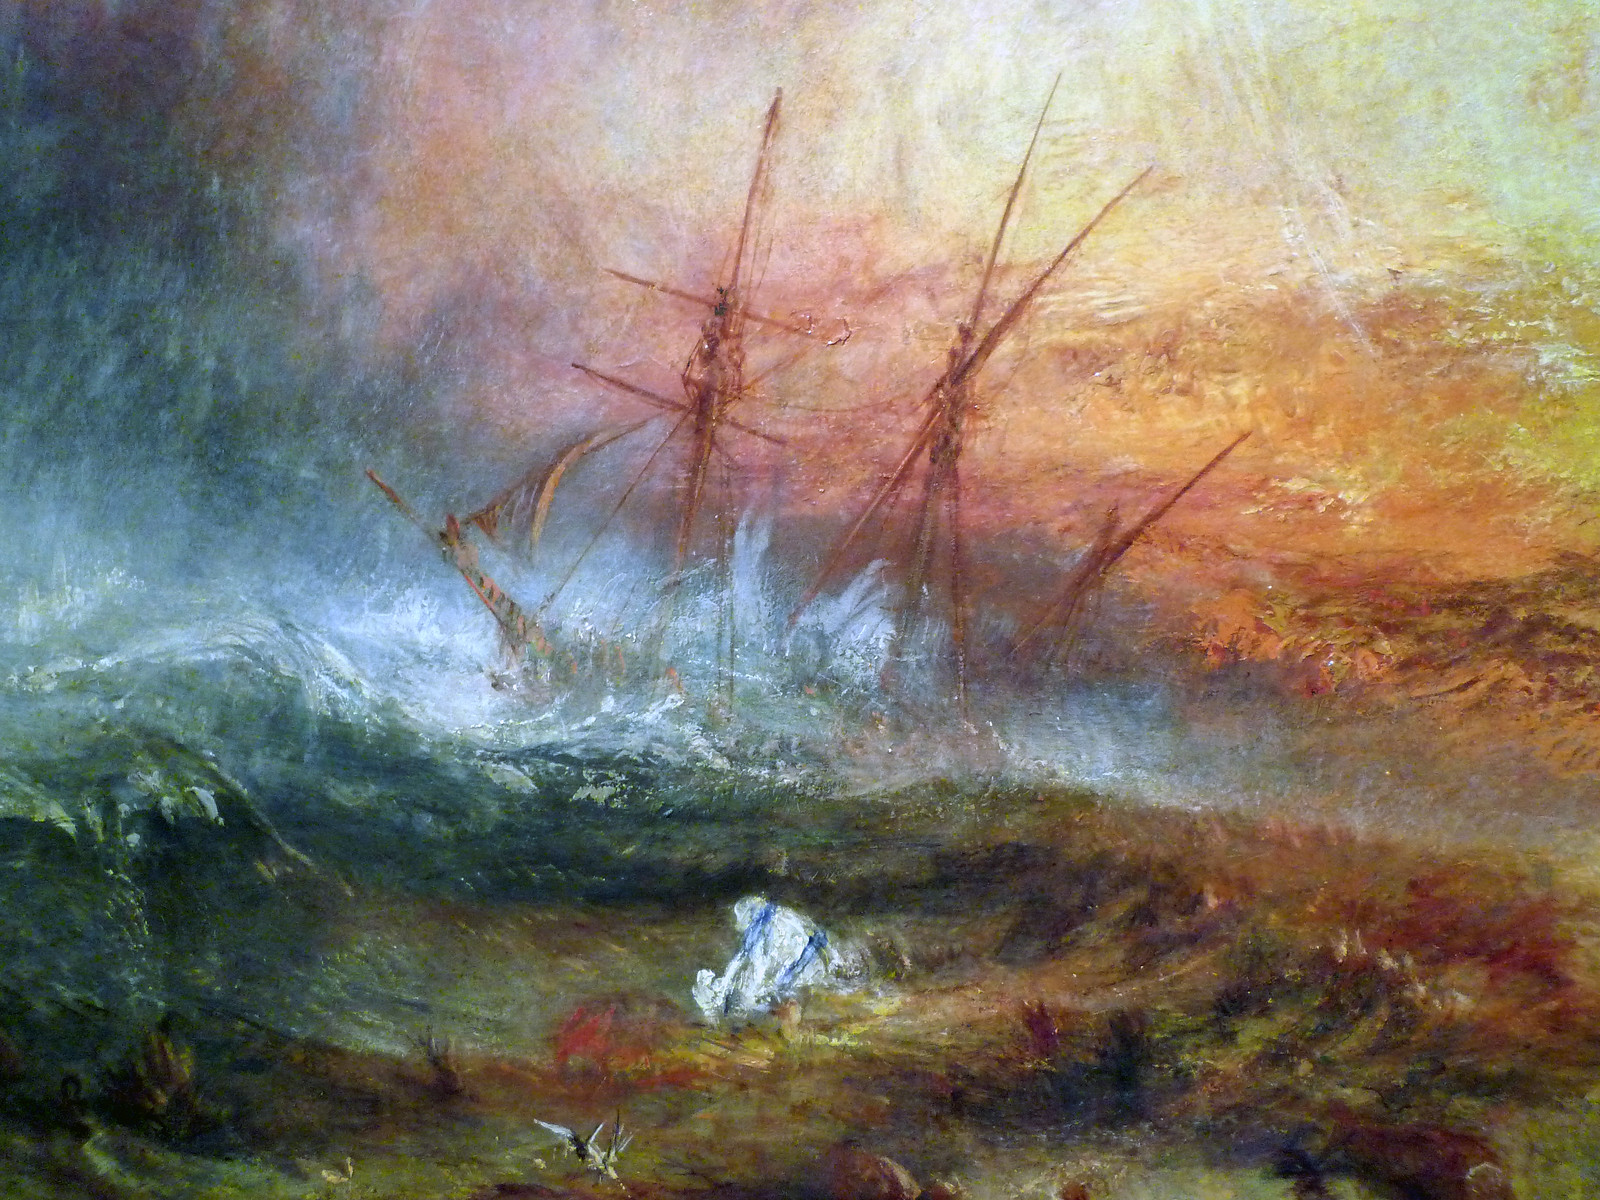 JMW Turner, Slave Ship, detail of ship | by profzucker